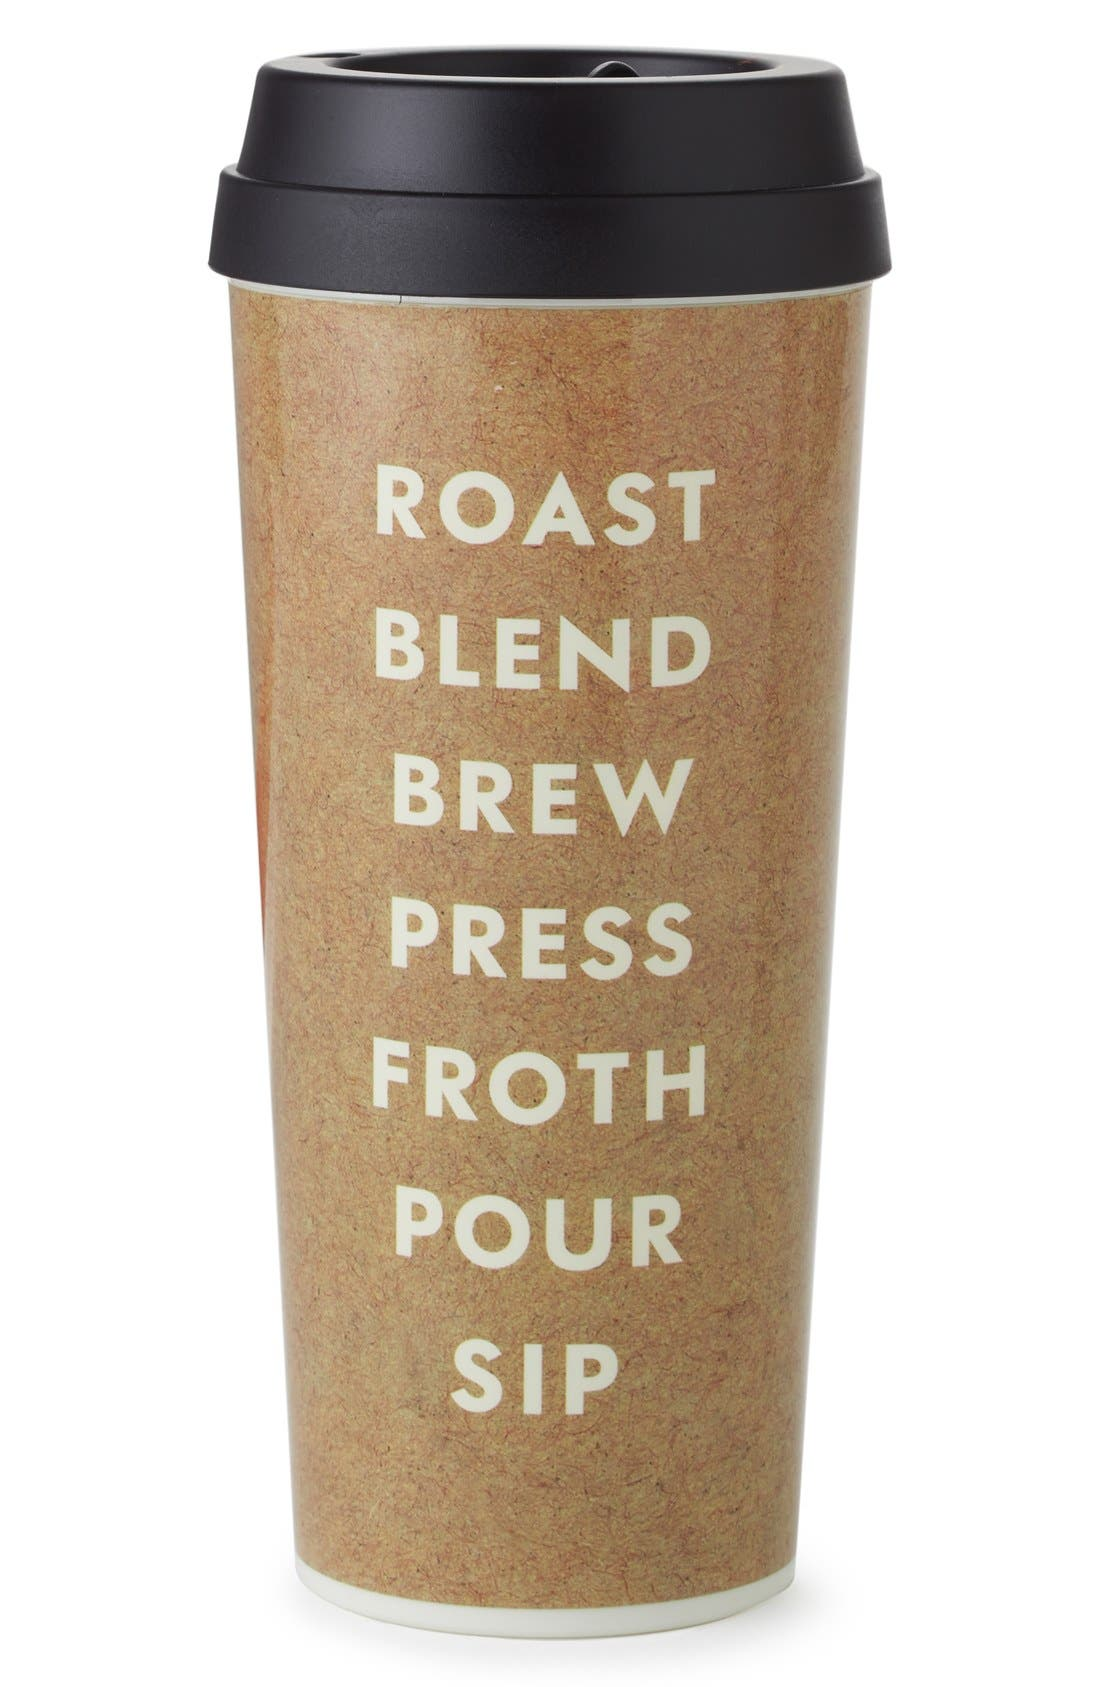 KATE SPADE NEW YORK 'roast blend brew press froth pour sip' thermal mug, Main, color, 200